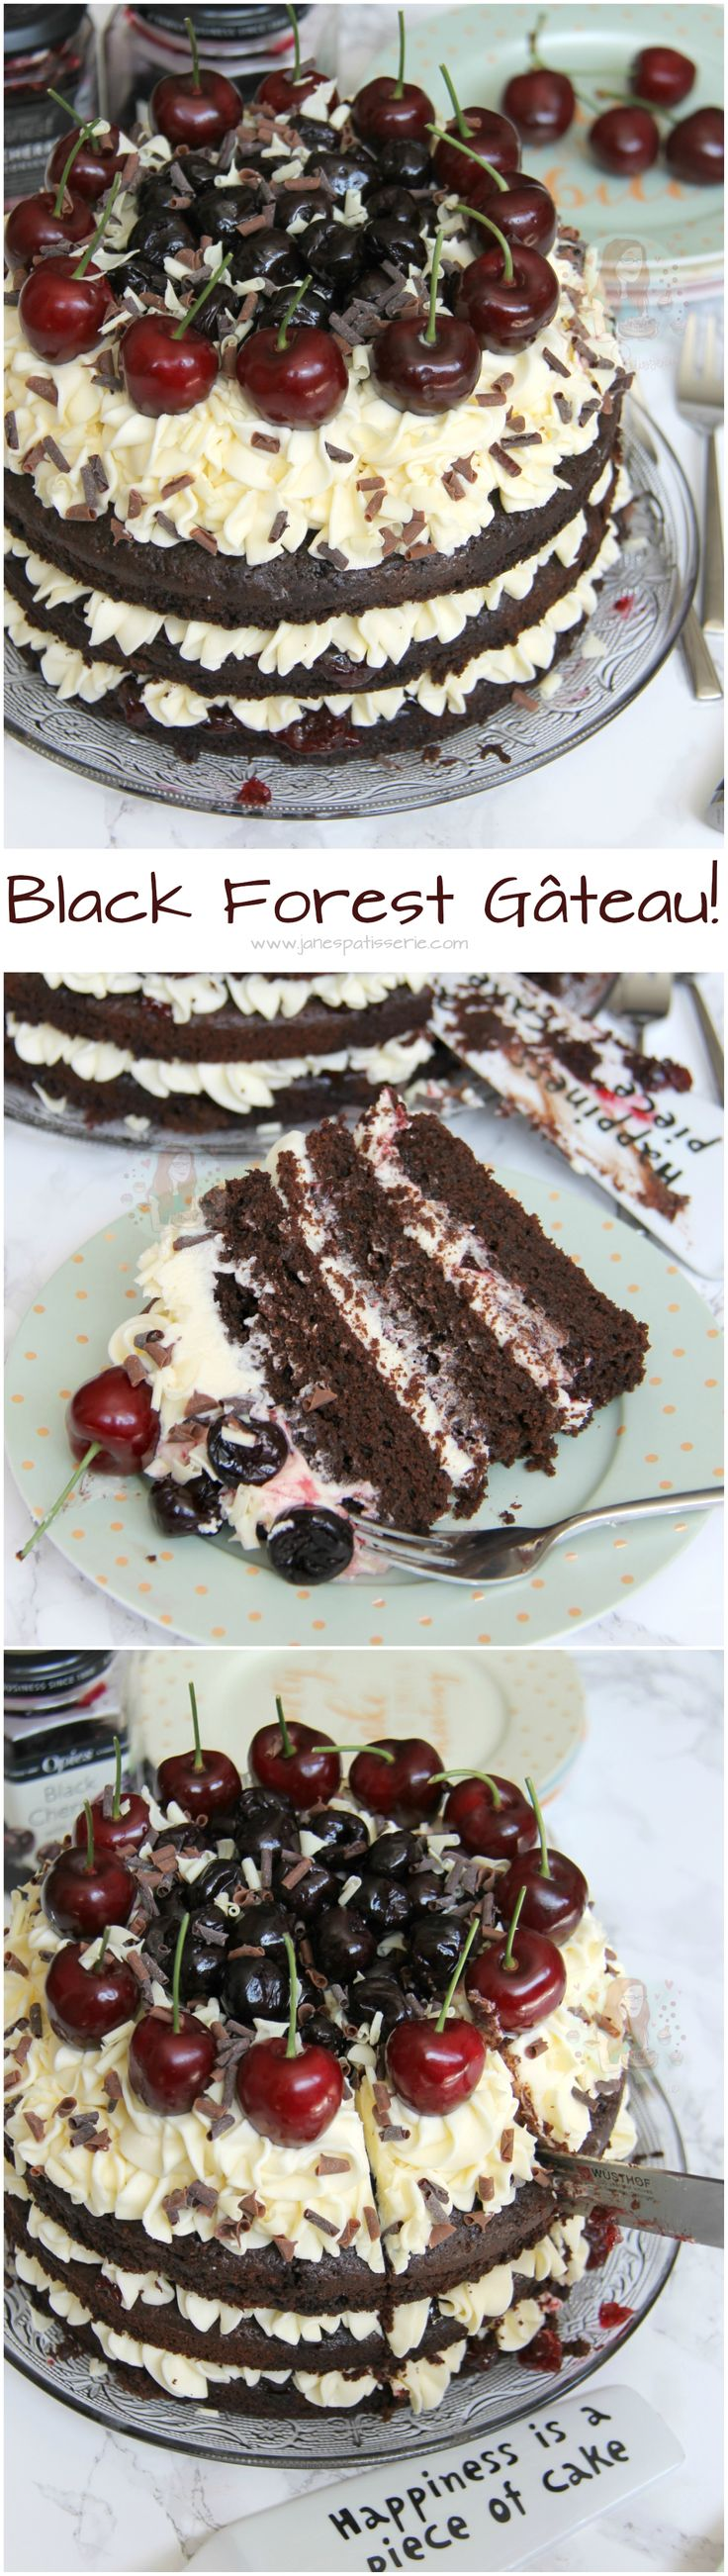 Black Forest Gateau! ❤️ A Three Layer, Chocolate and Kirsch Sponge, with Vanilla Buttercream, and all things Cherry and Chocolate.